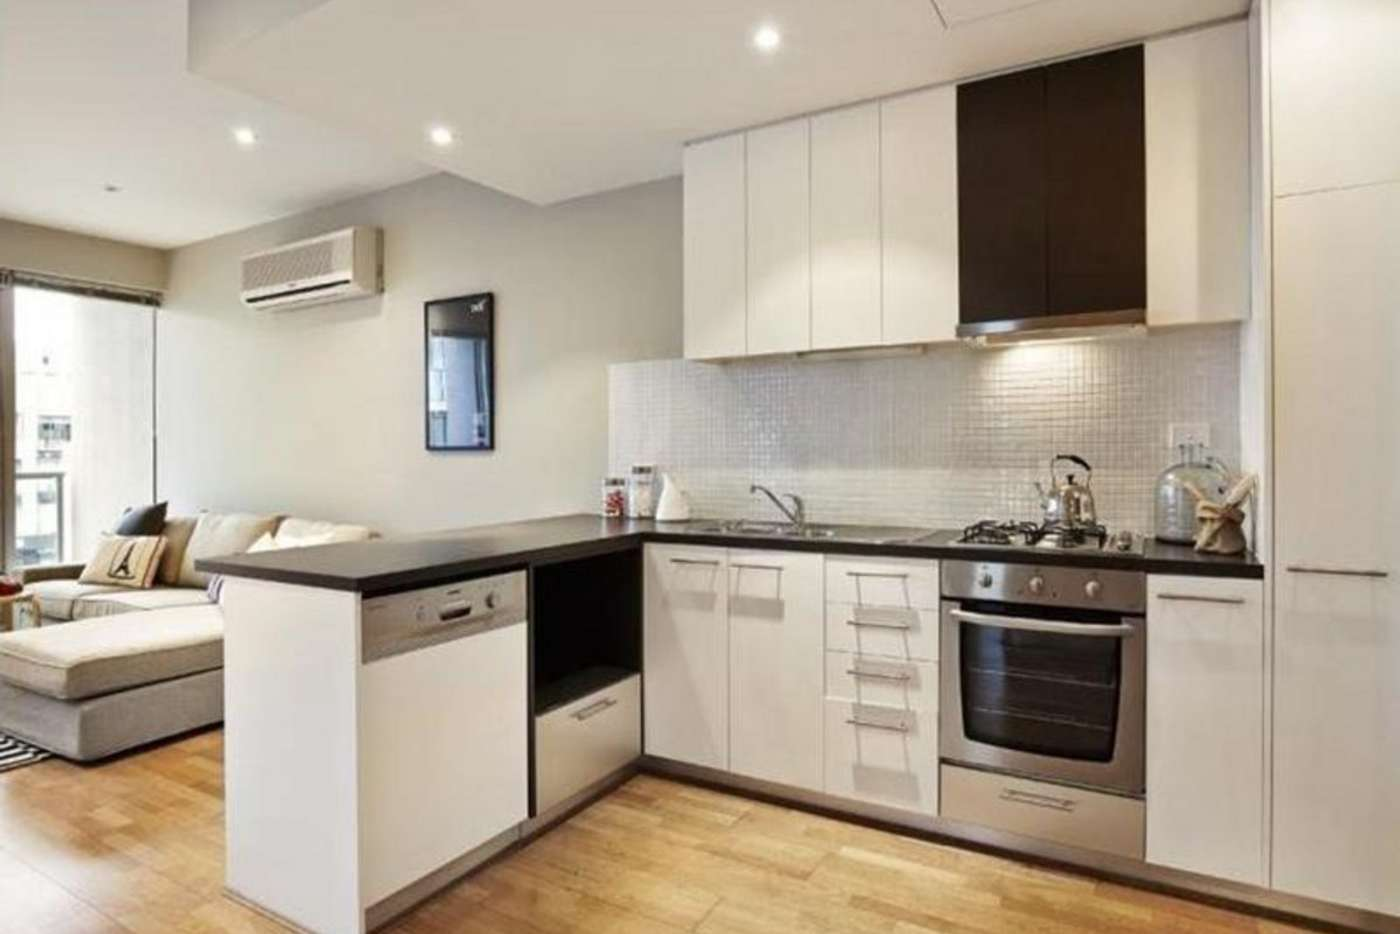 Sixth view of Homely apartment listing, 411/54 Nott Street, Port Melbourne VIC 3207